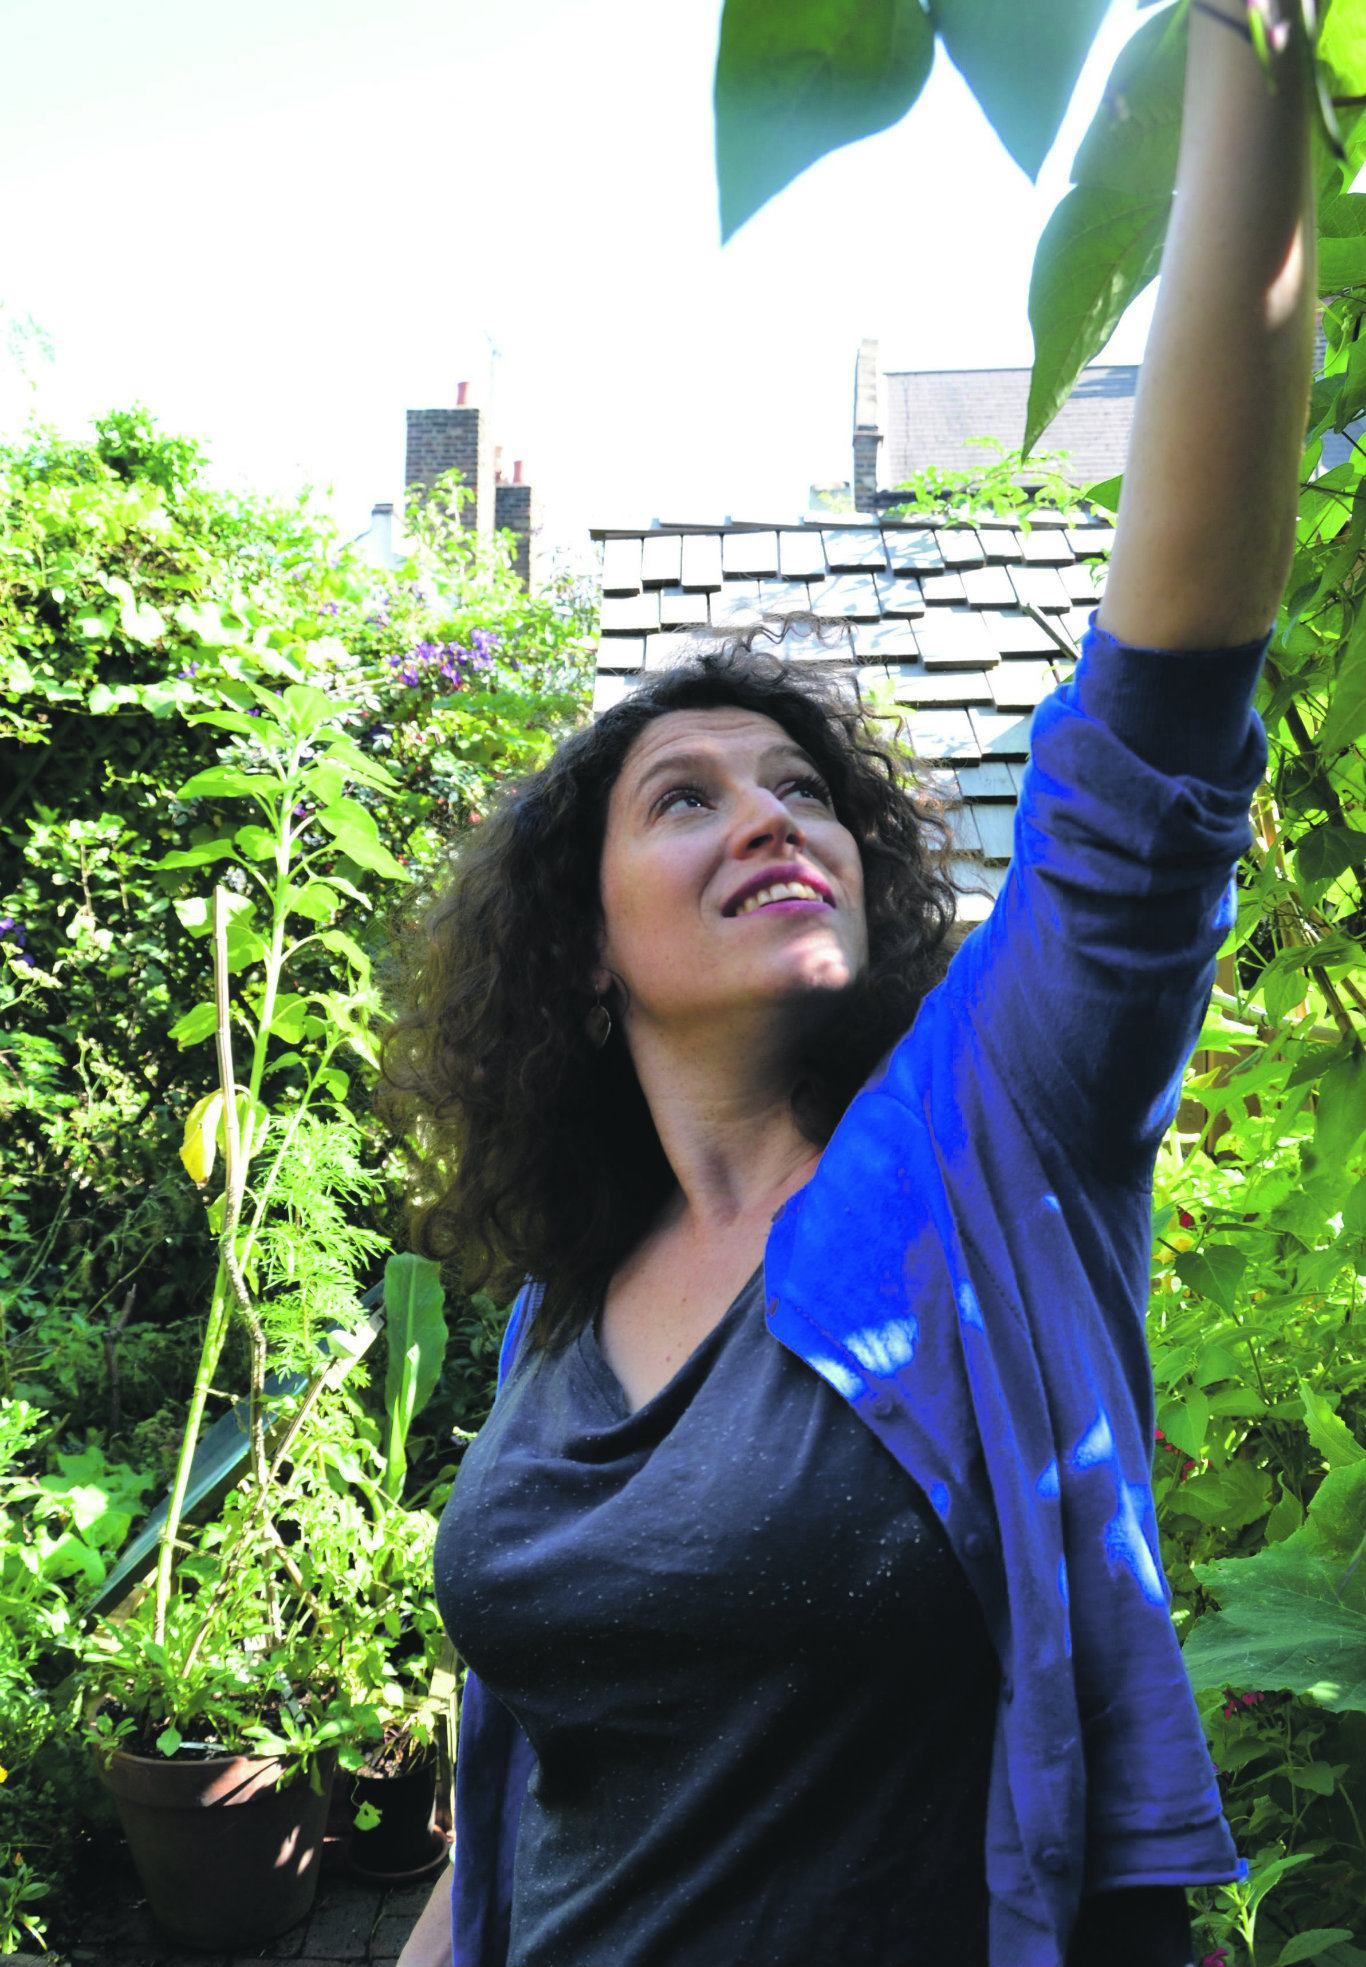 In her paradise: Charlotte Mendelson. Photo: Joanna Briscoe